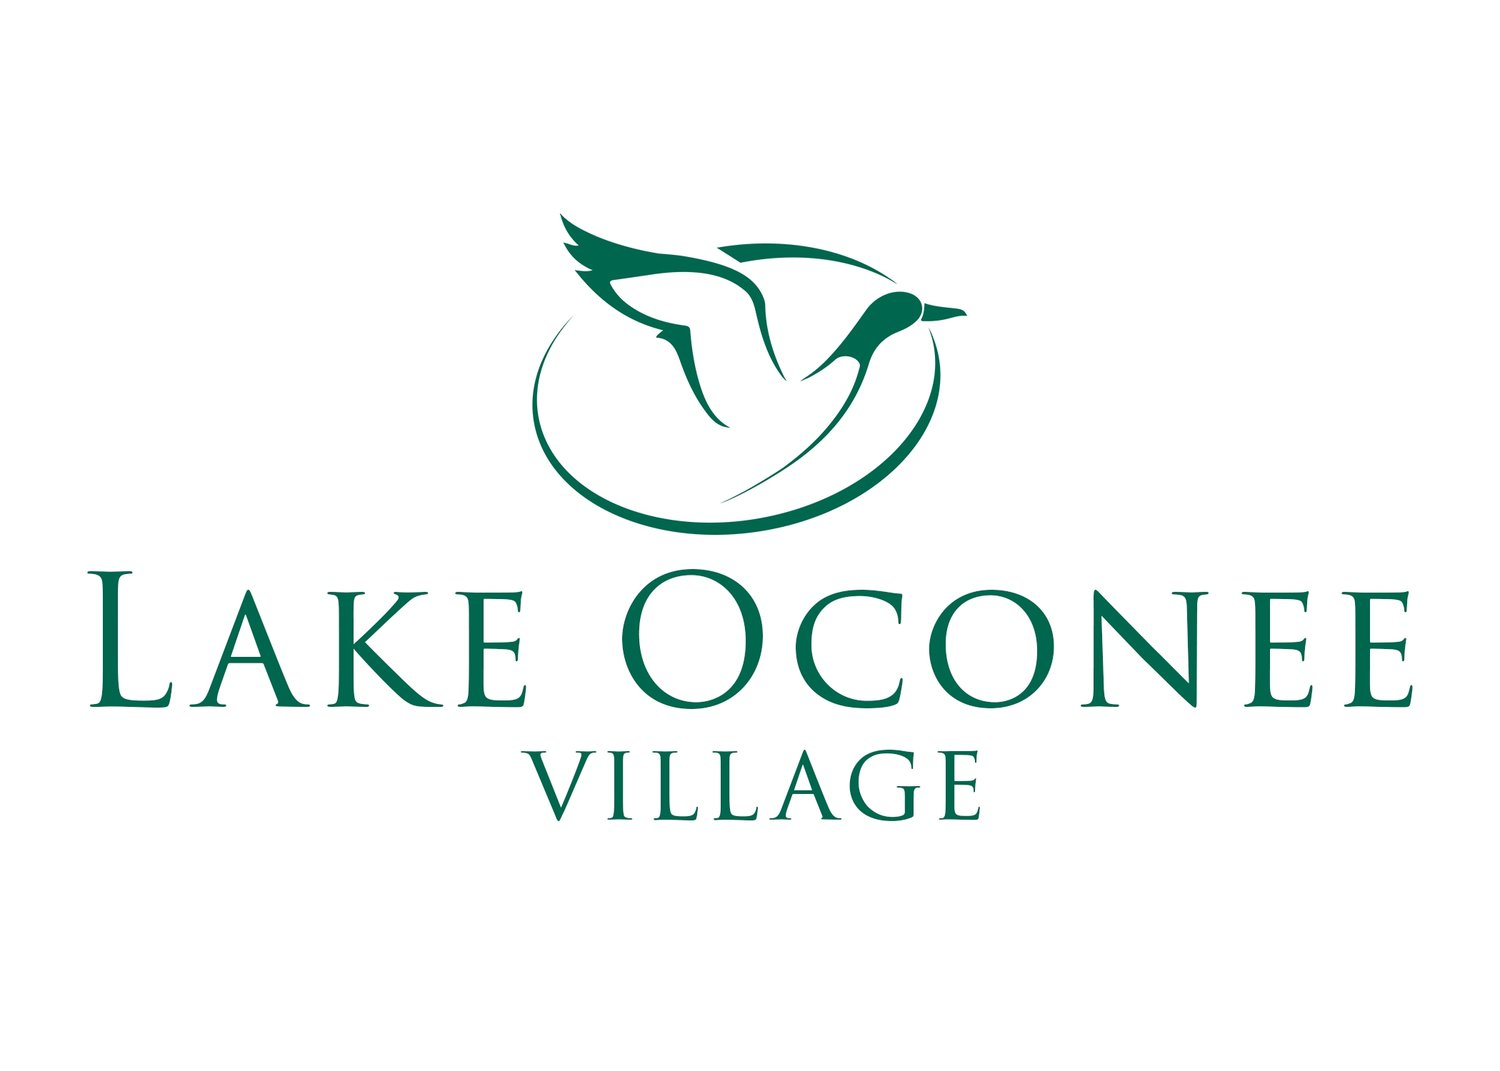 Lake Oconee Village